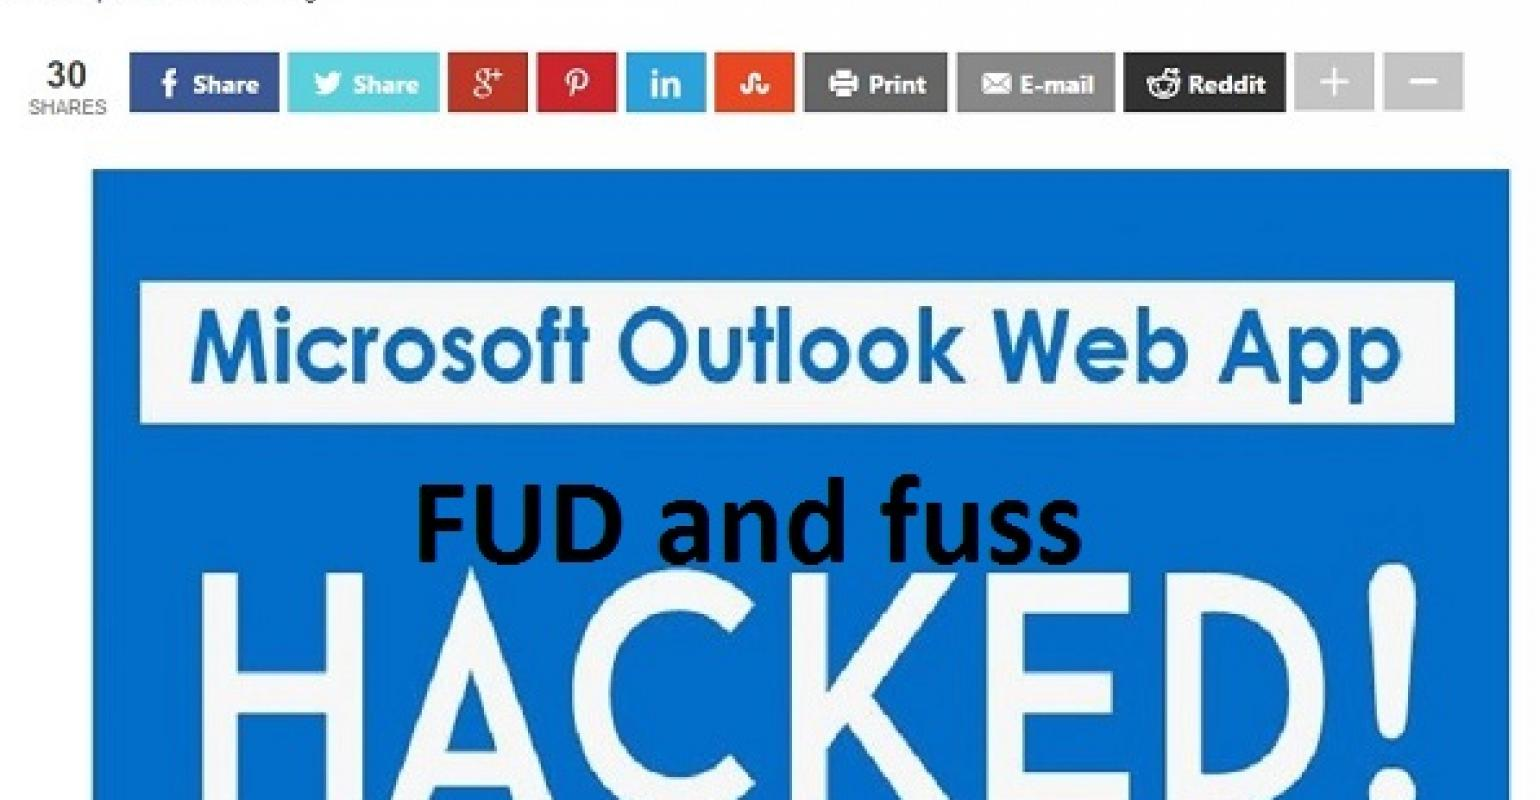 FUD continues over OWA backdoor exploit | IT Pro